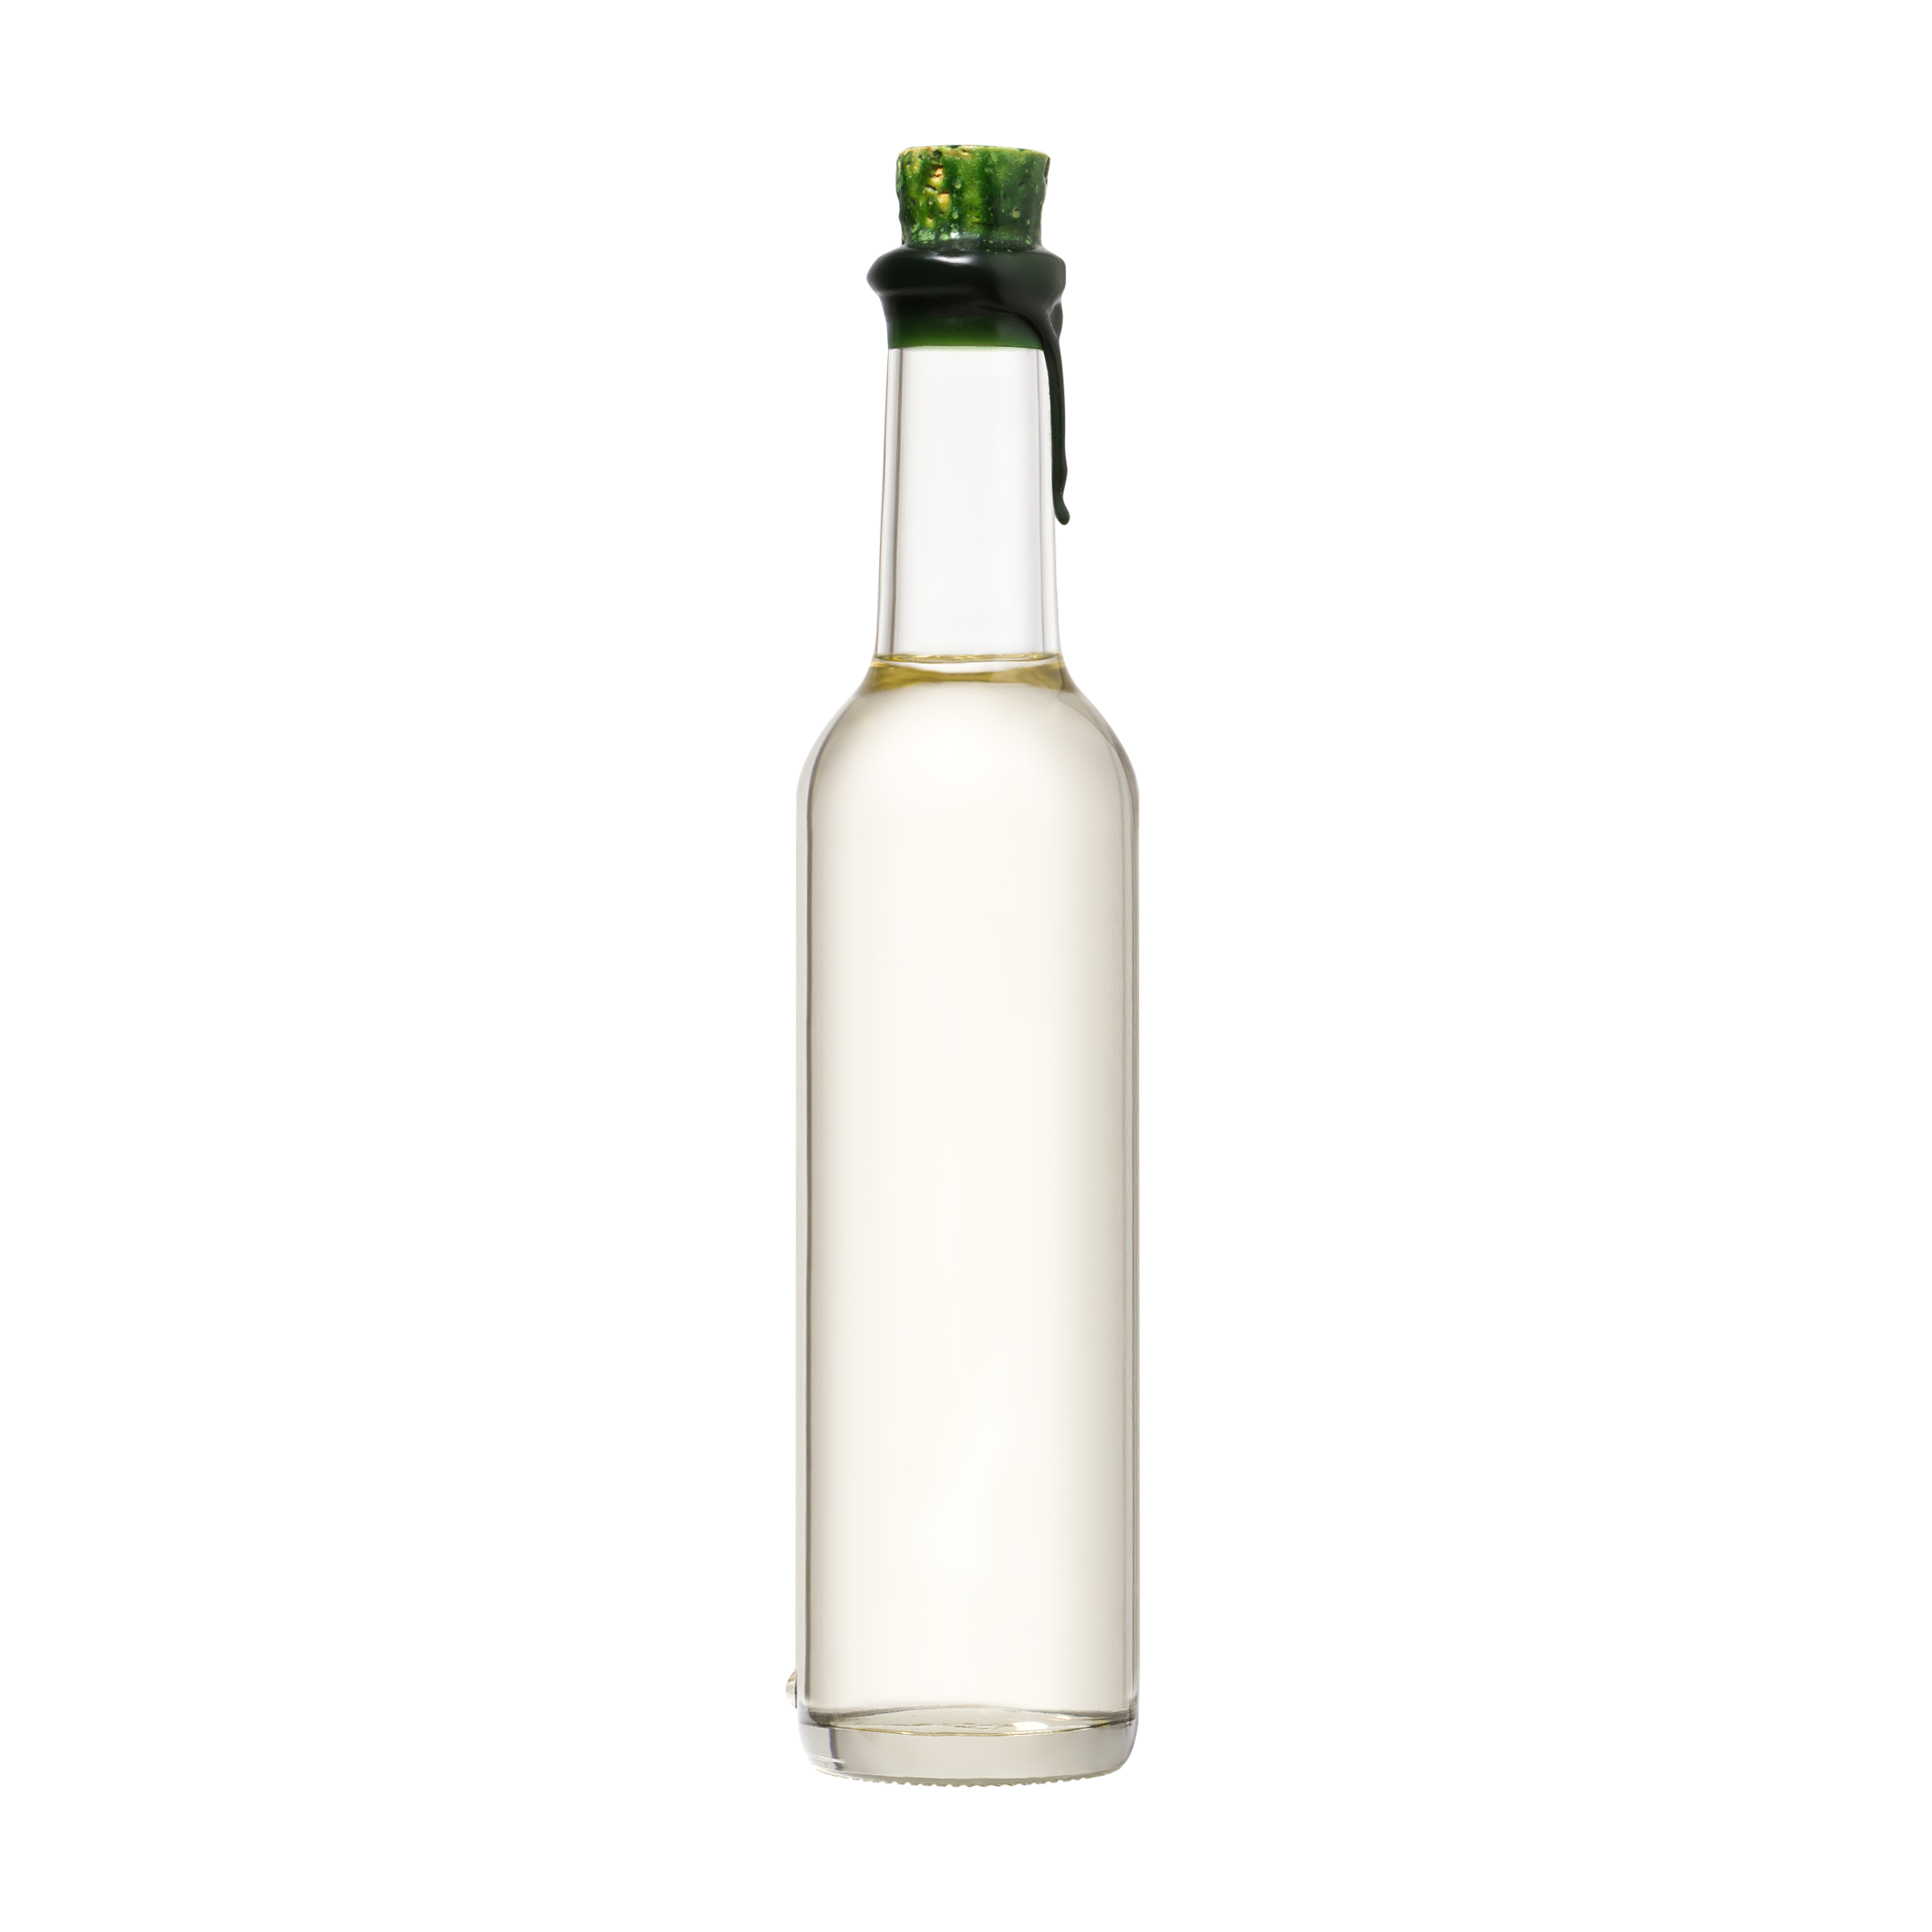 Clear bottle product photography